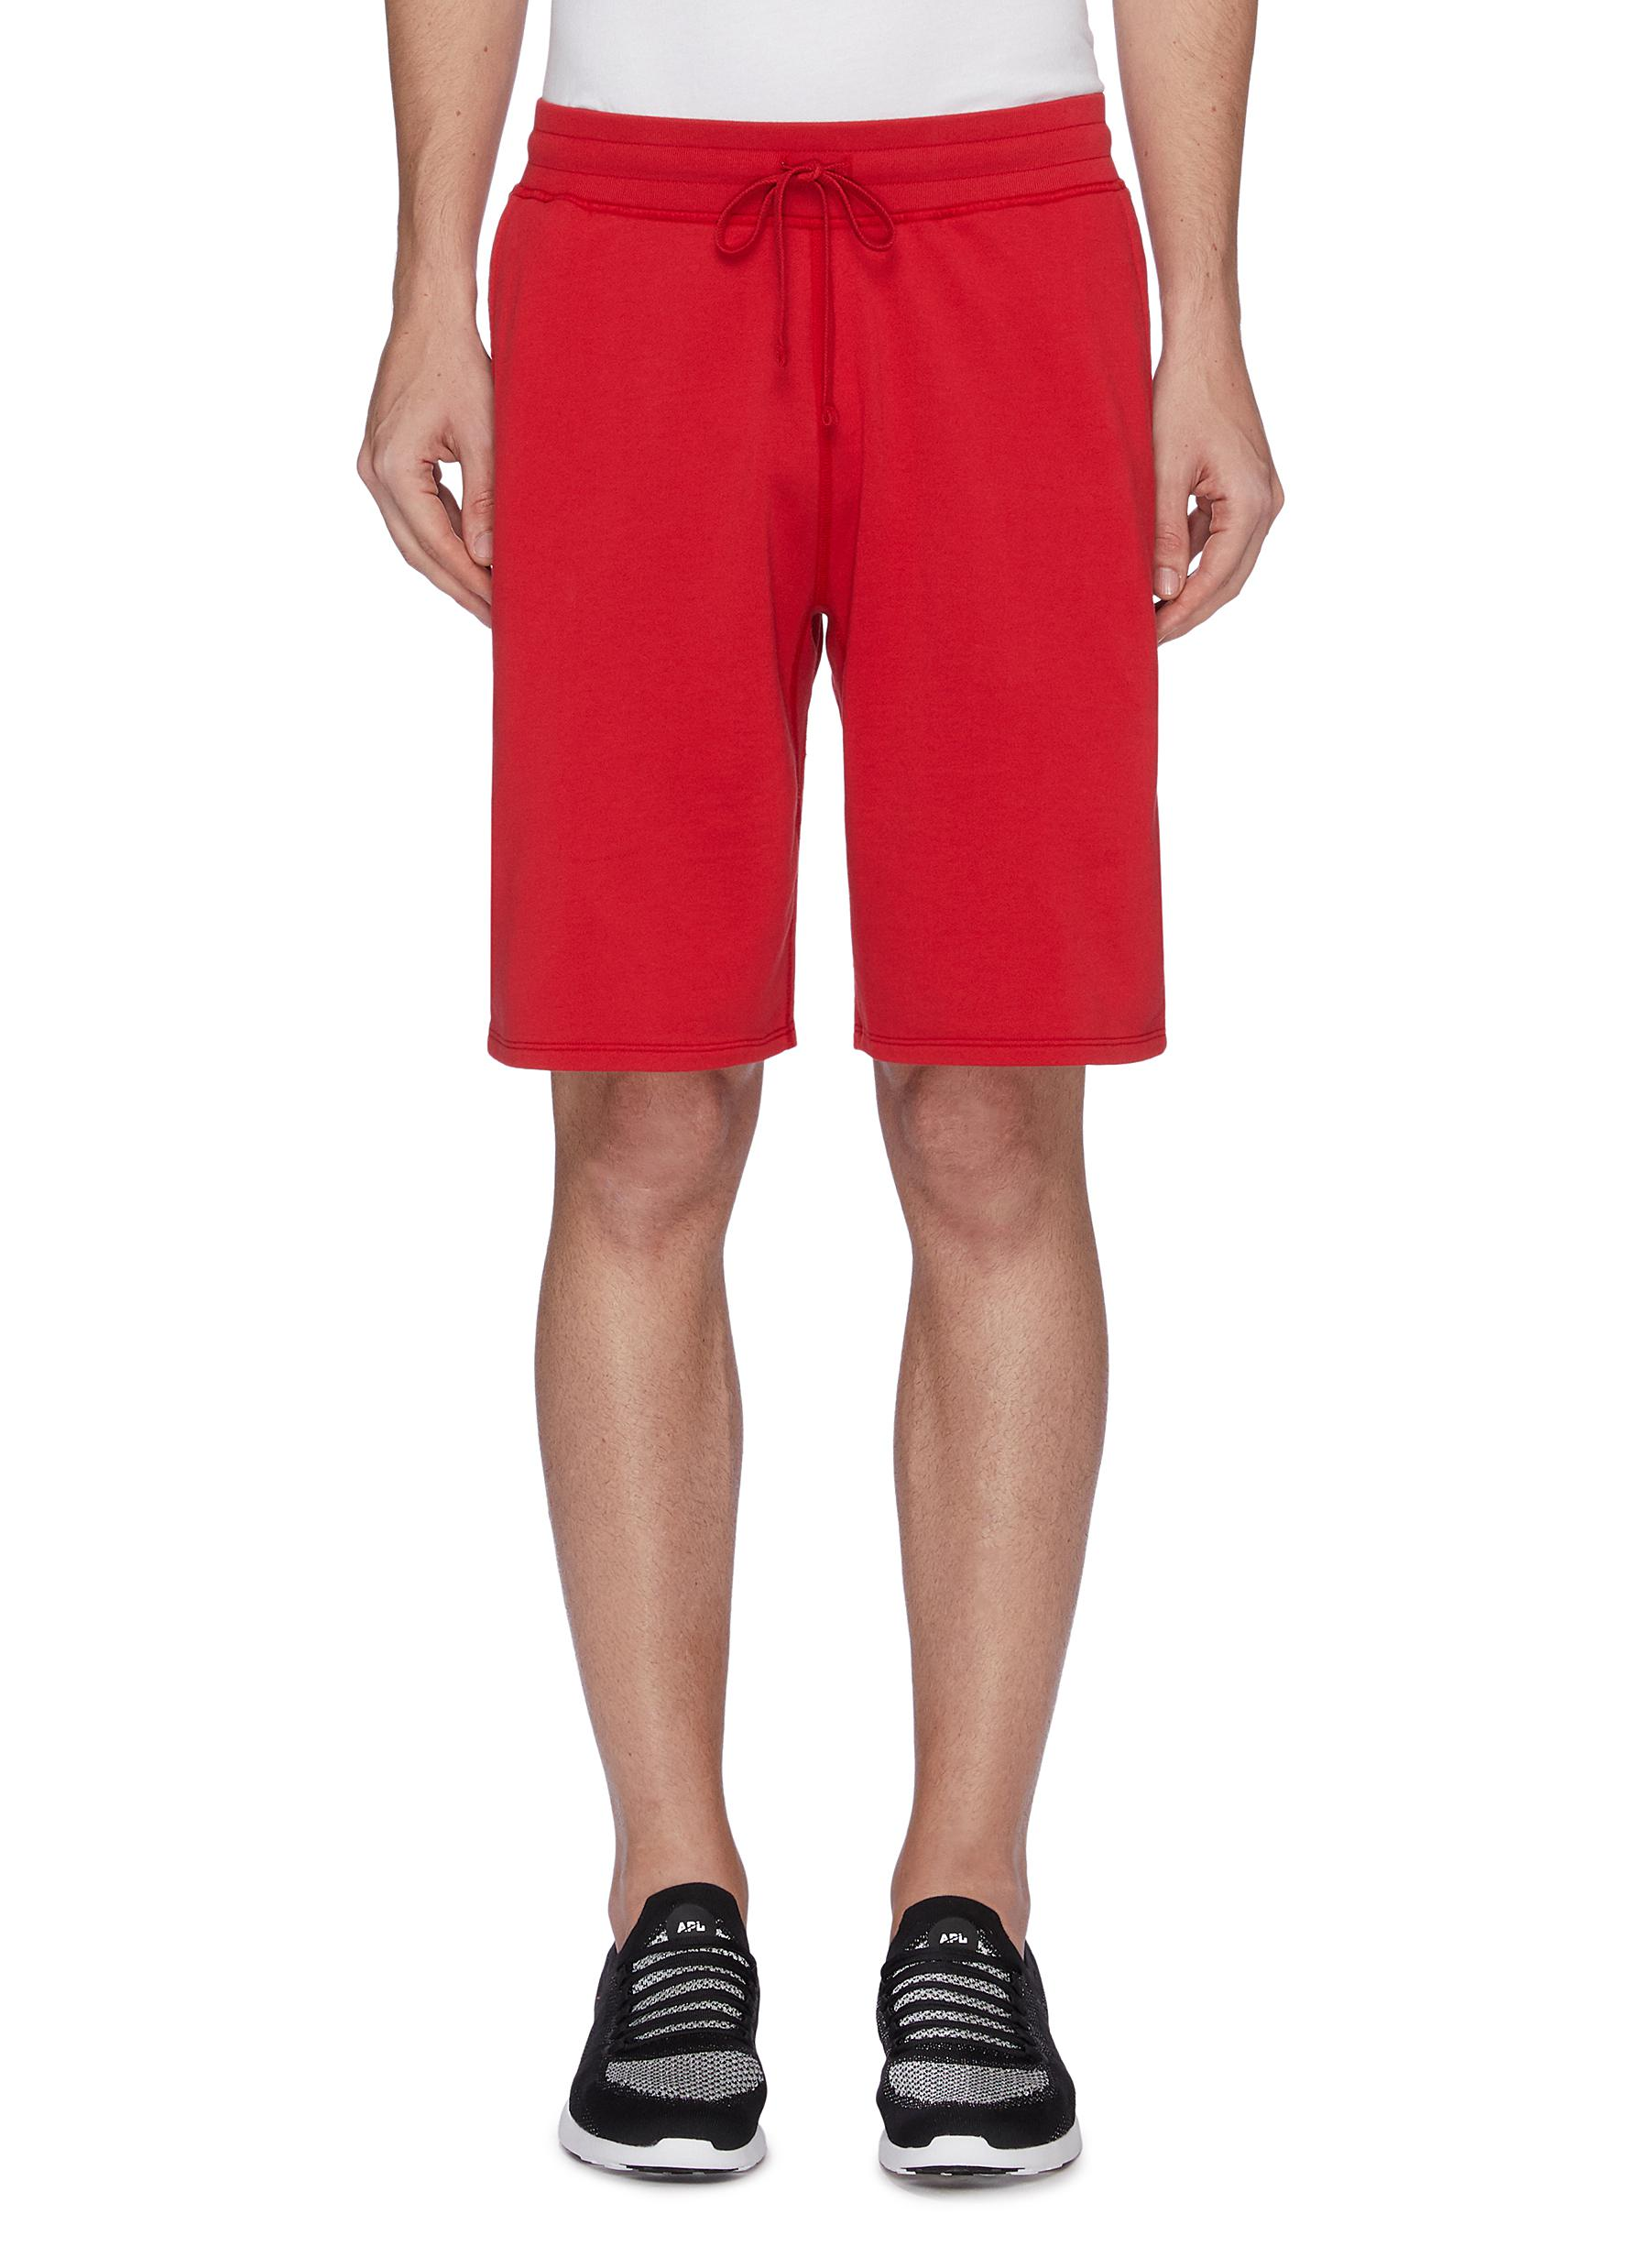 f473d0c3b32a Main View - Click To Enlarge - Reigning Champ - Flatlock seam sweat shorts